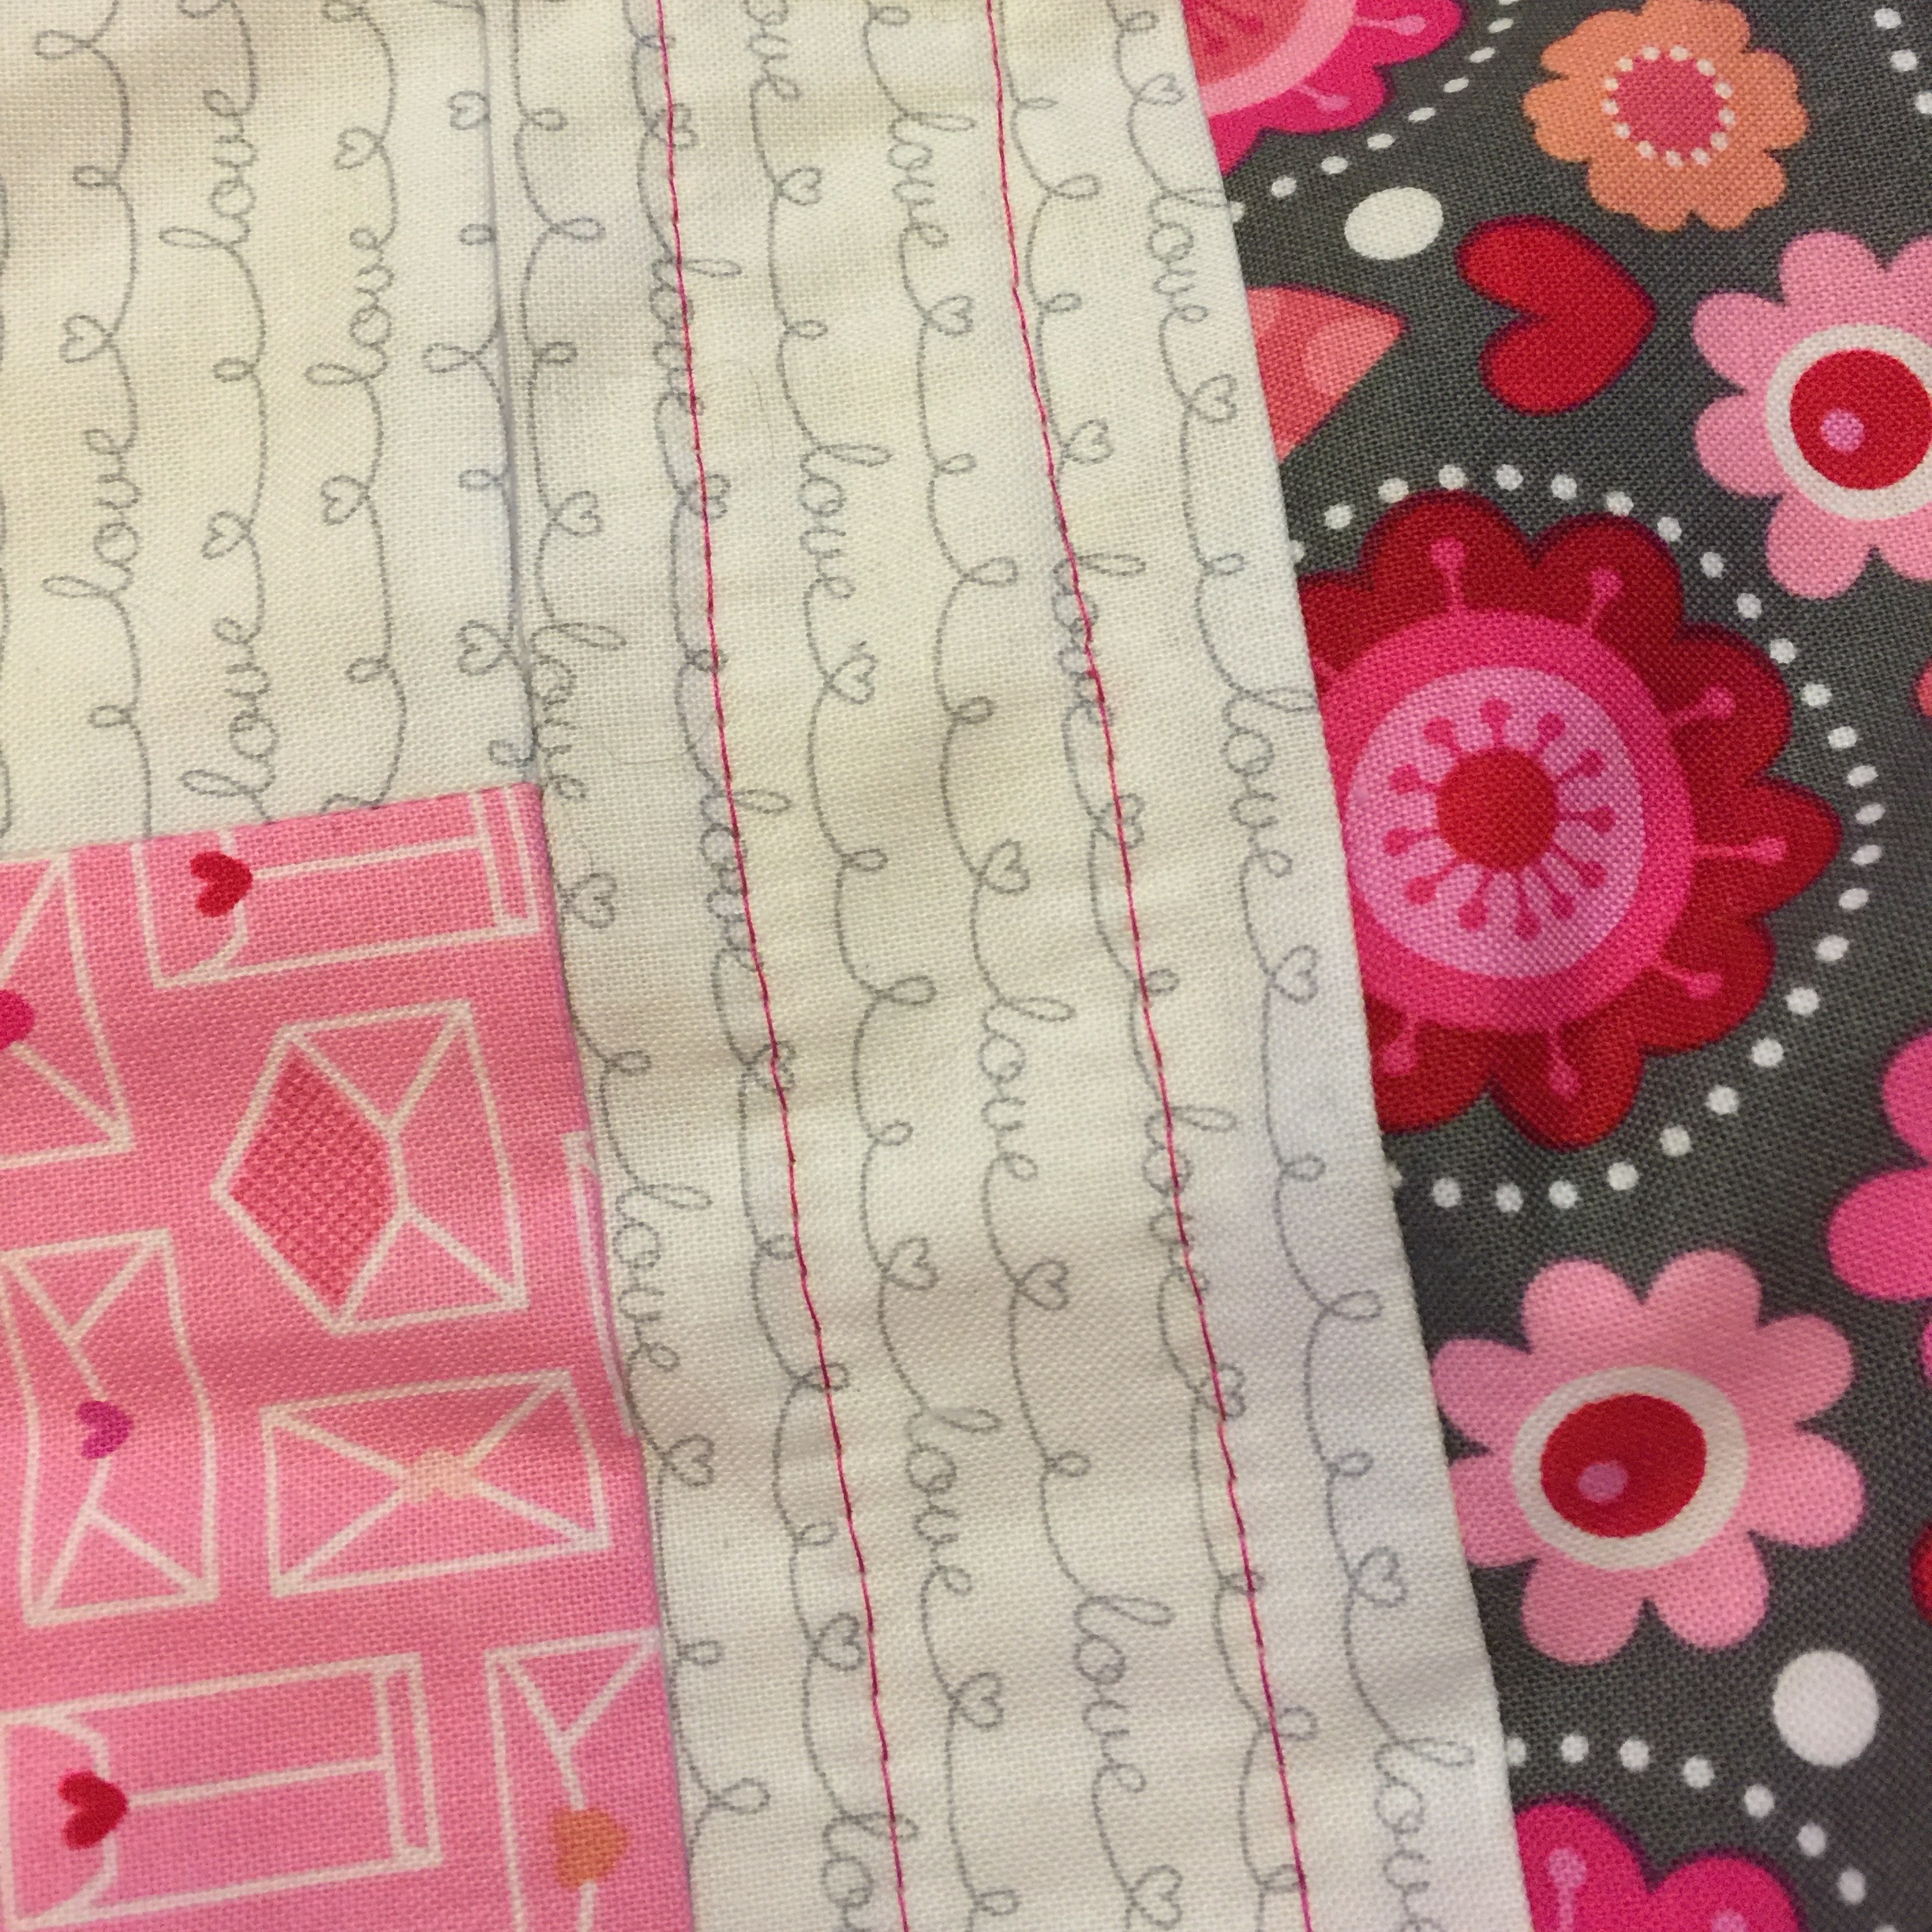 Jelly Roll Baby Quilt Tutorial: First rows of straight line quilting on Jelly Roll quilt complete